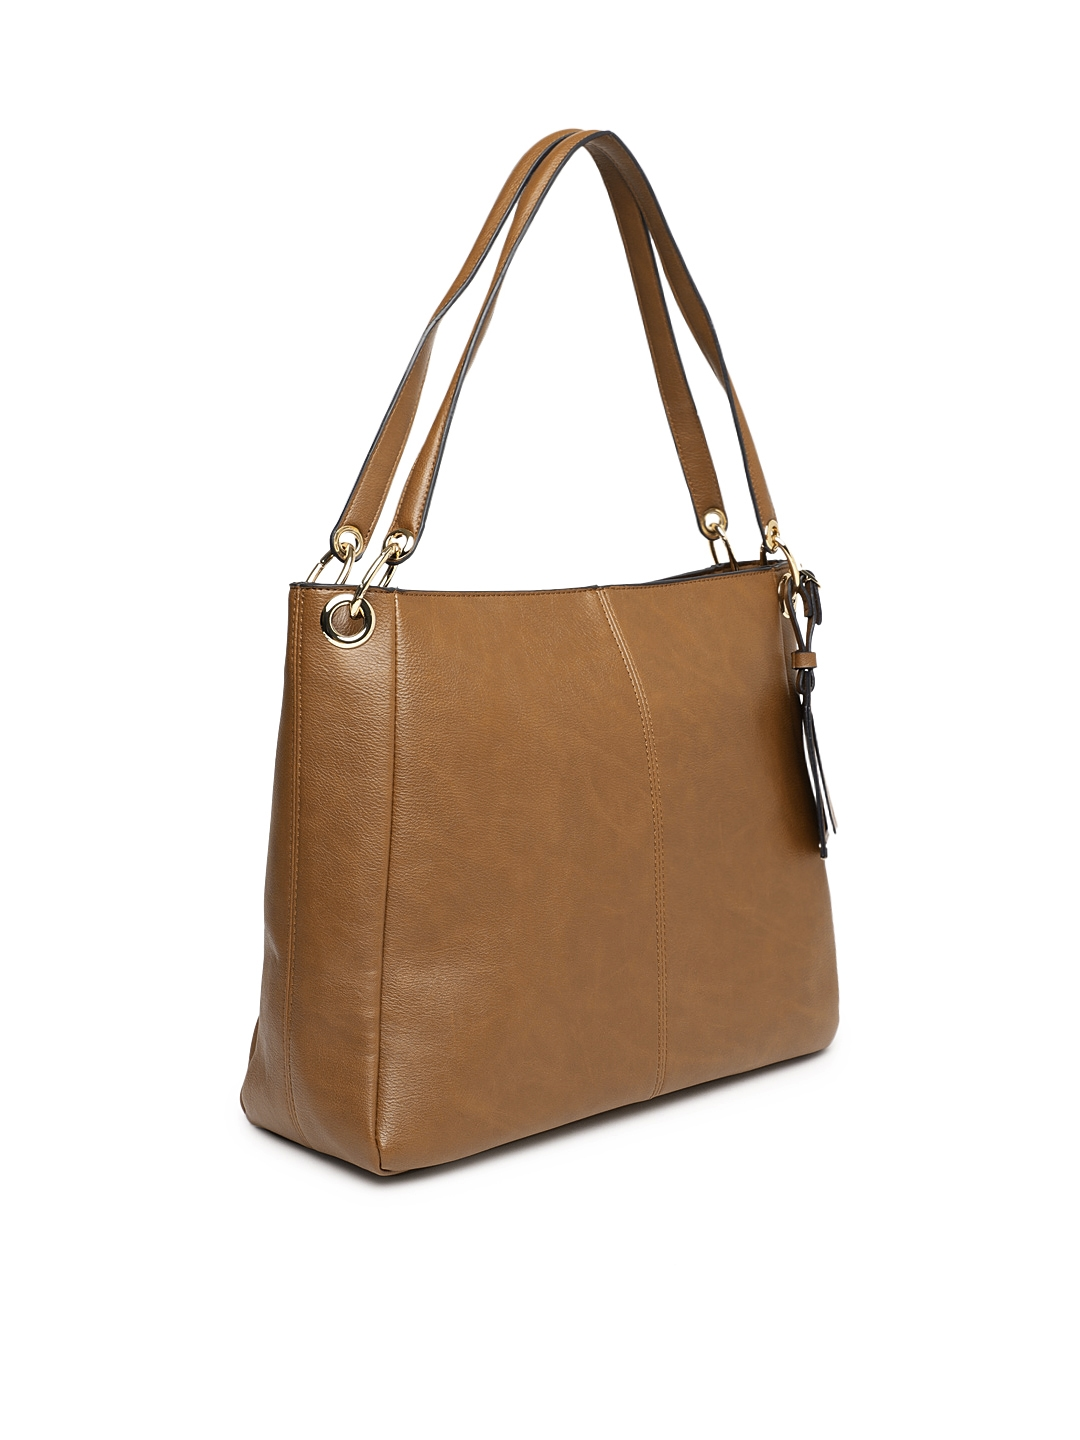 3289a3c150d4 Brown Purses Target - Best Purse Image Ccdbb.Org